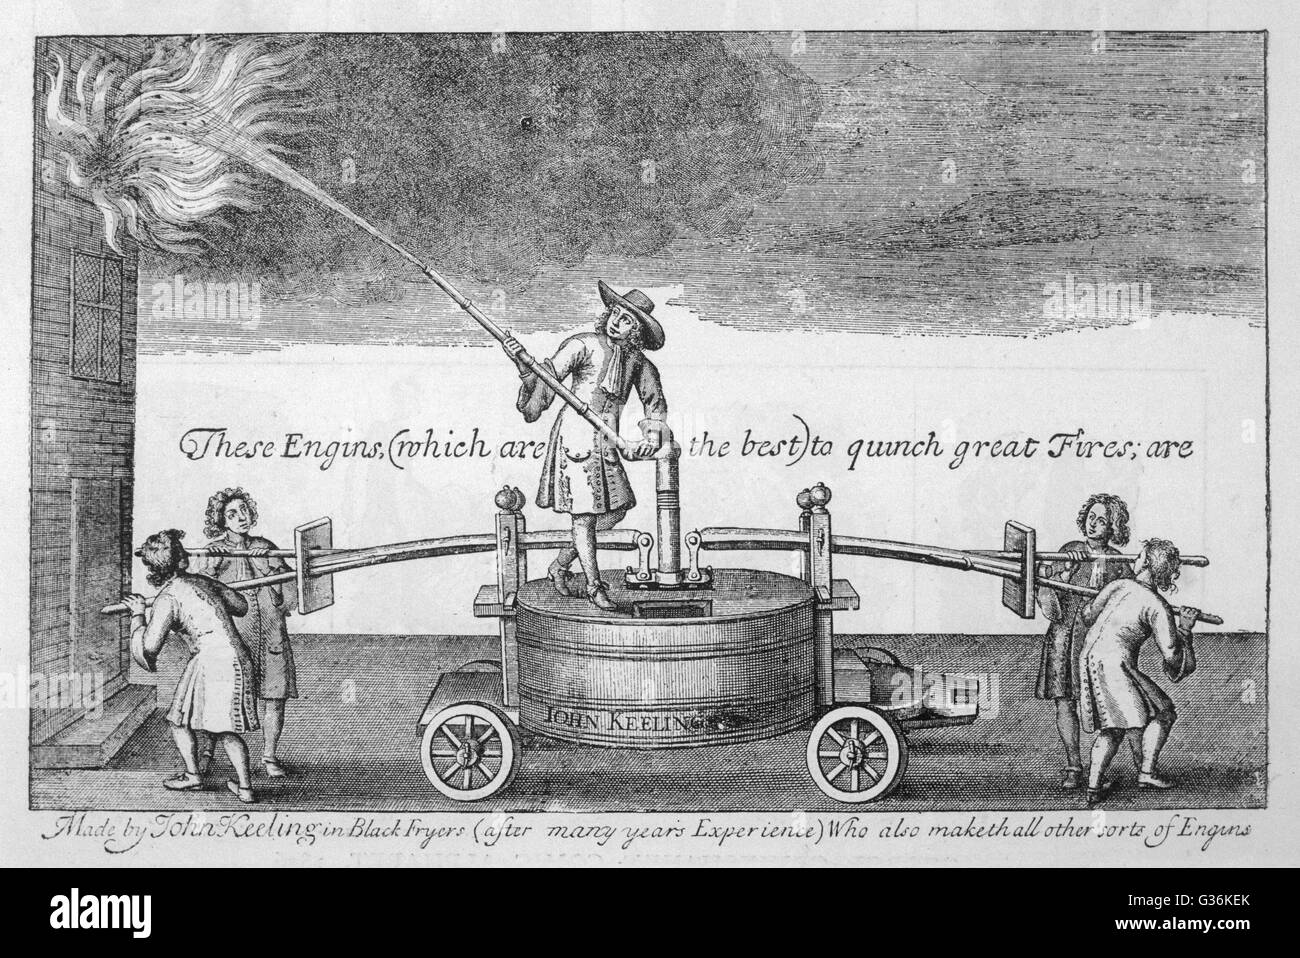 John Keeling's appliance for putting out fires     Date: 1678 - Stock Image